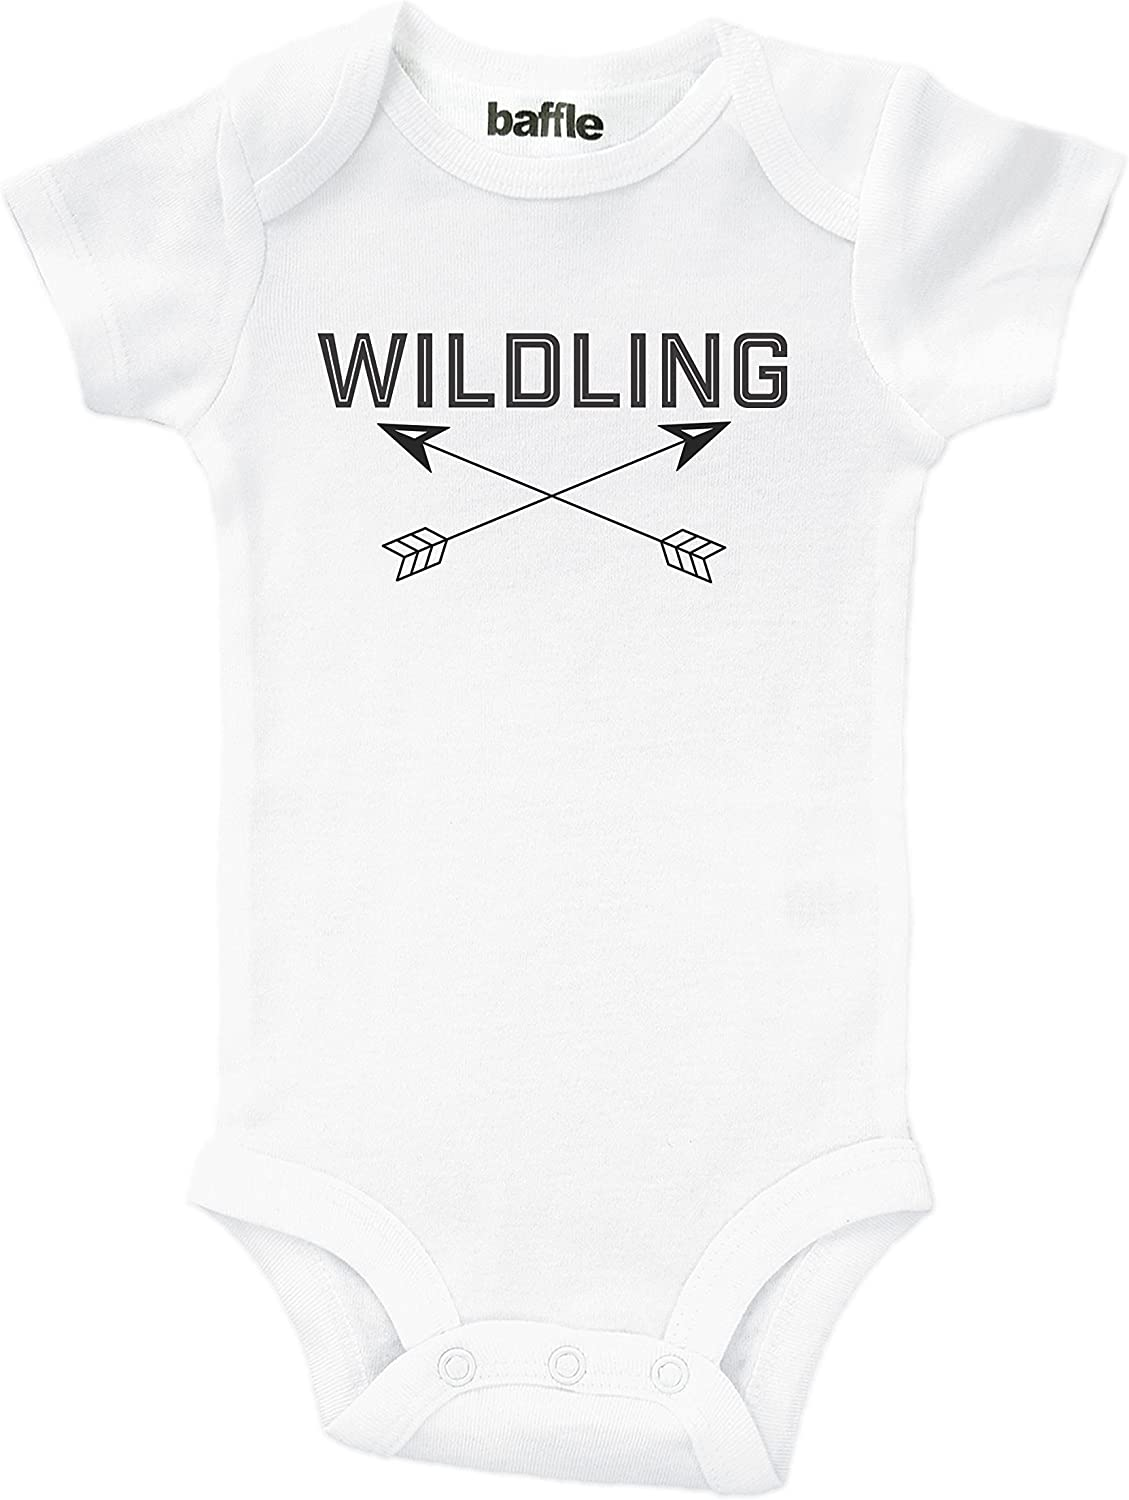 Baffle Wildling Game of Thrones Baby Outfit